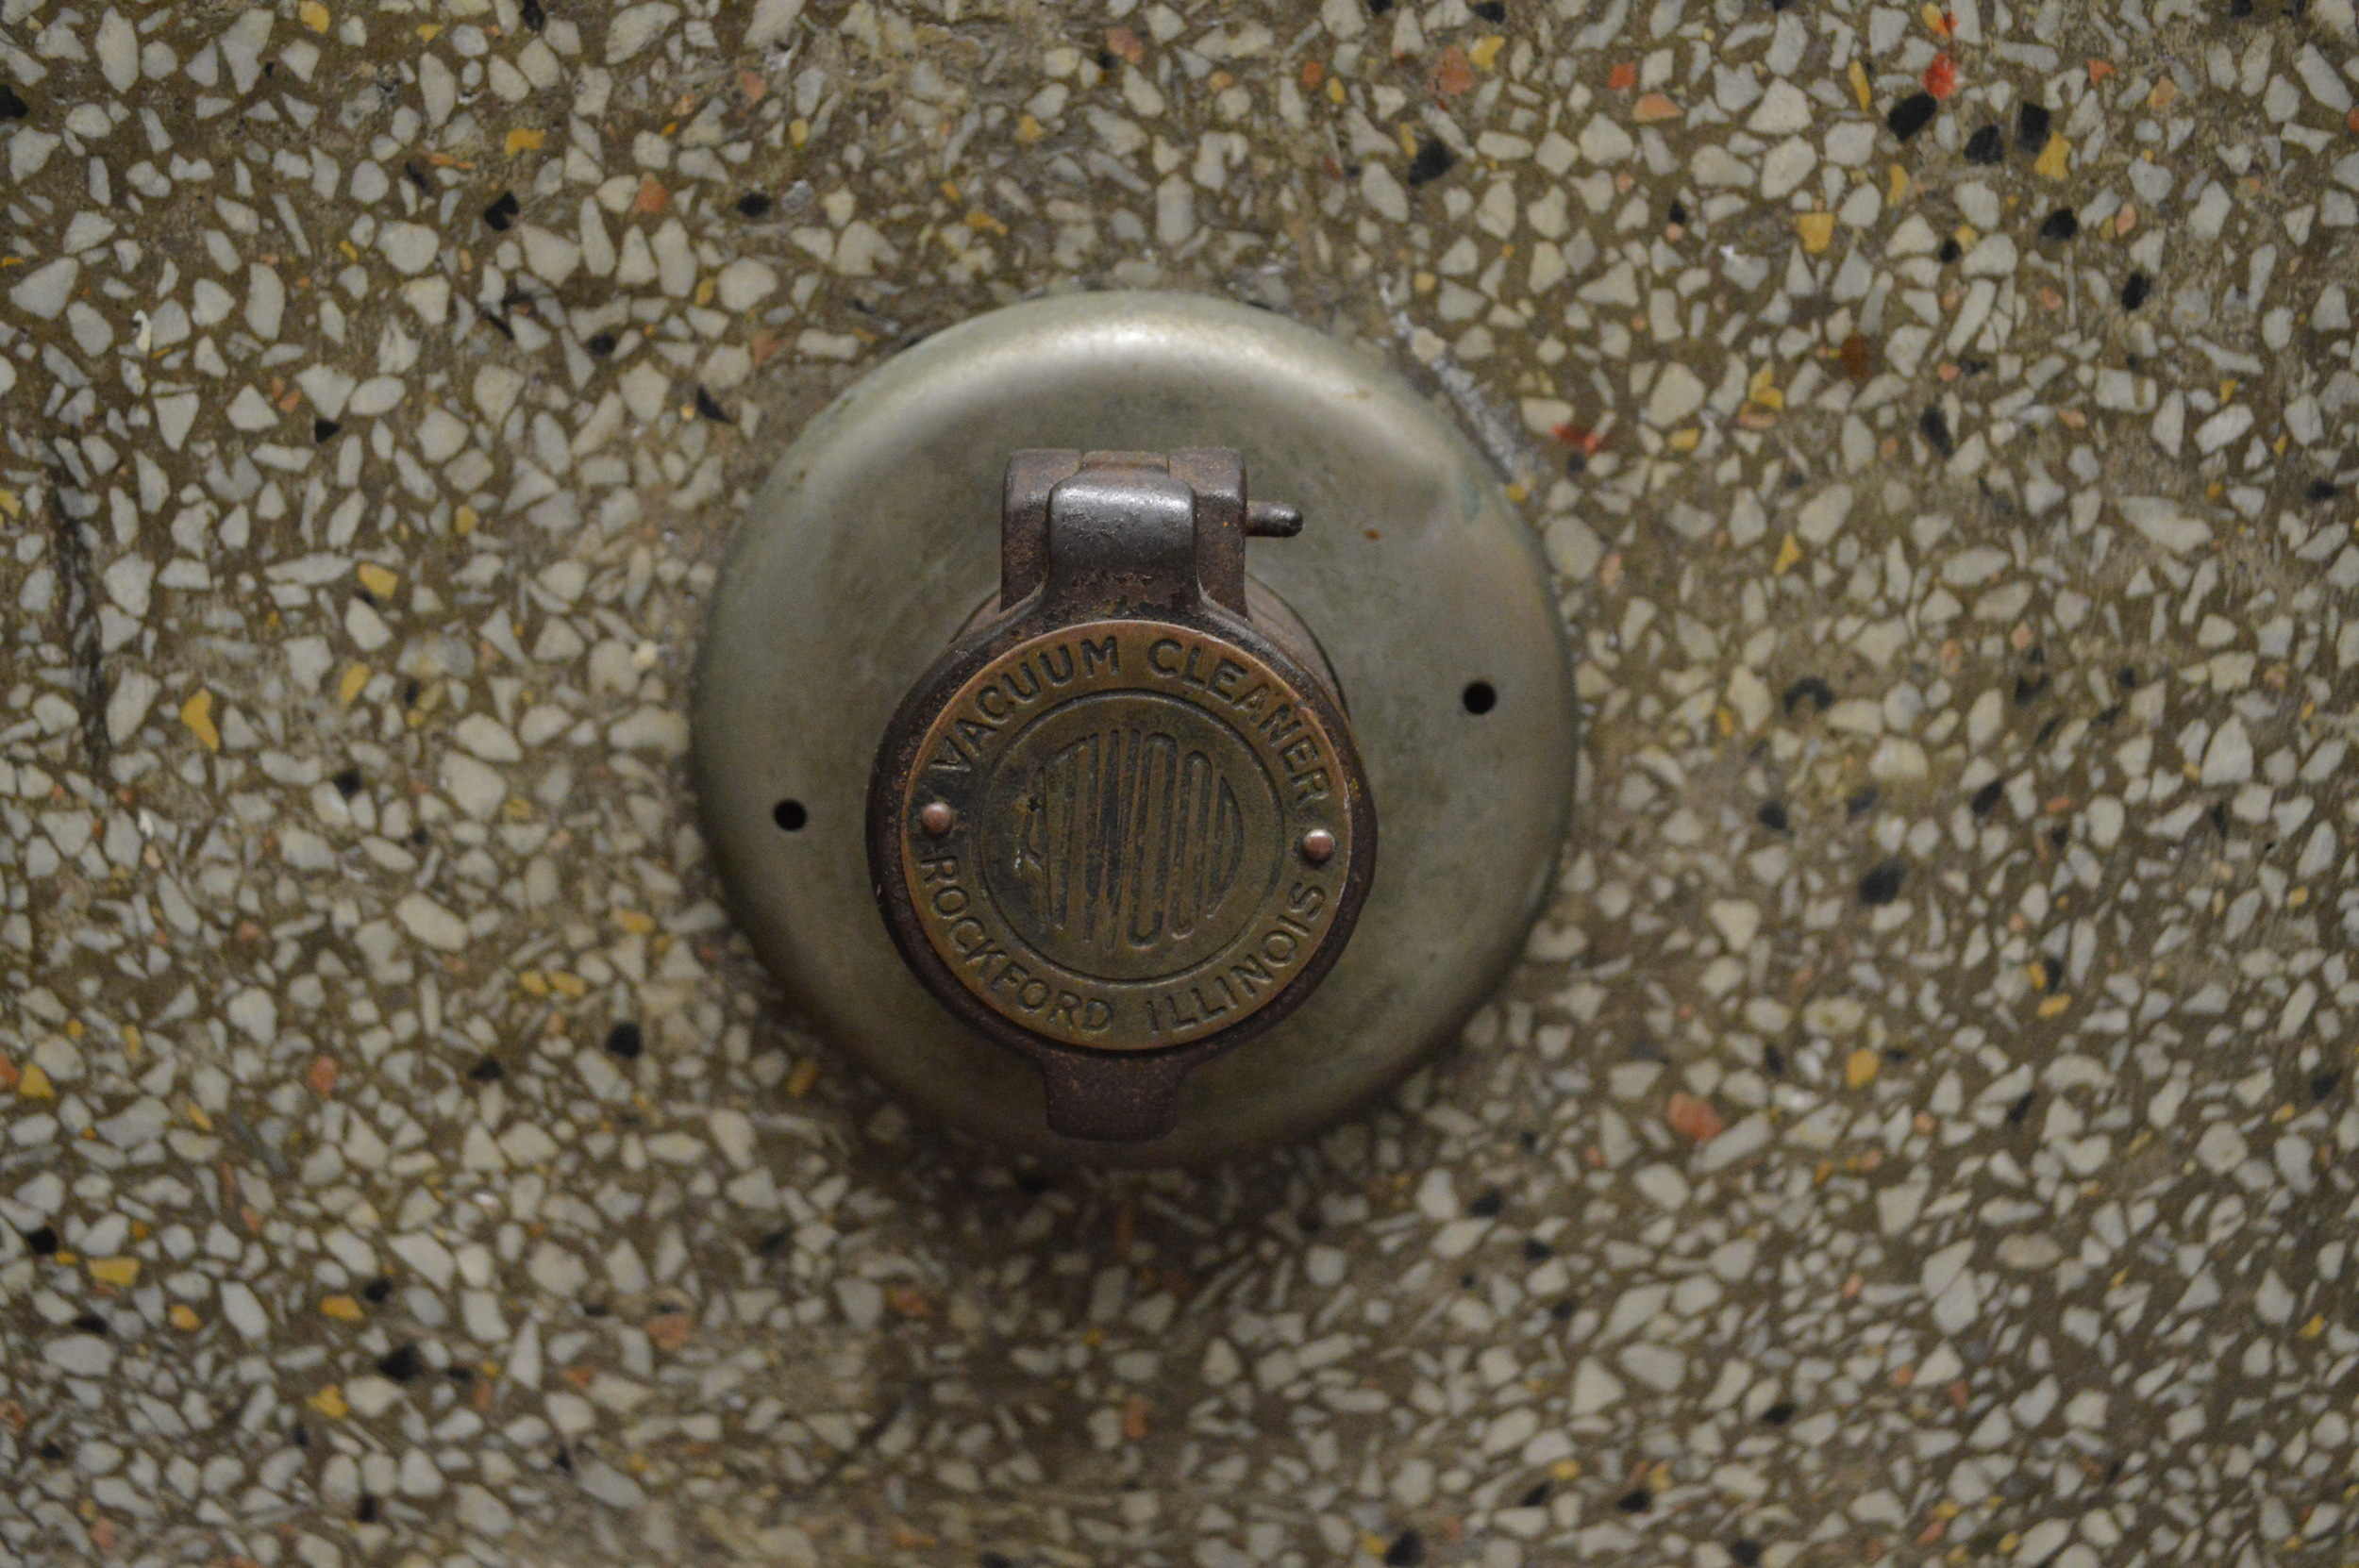 Original central vacuum hook-up, manufactured in Rockford, Illinois, installed at Walker Elementary School.